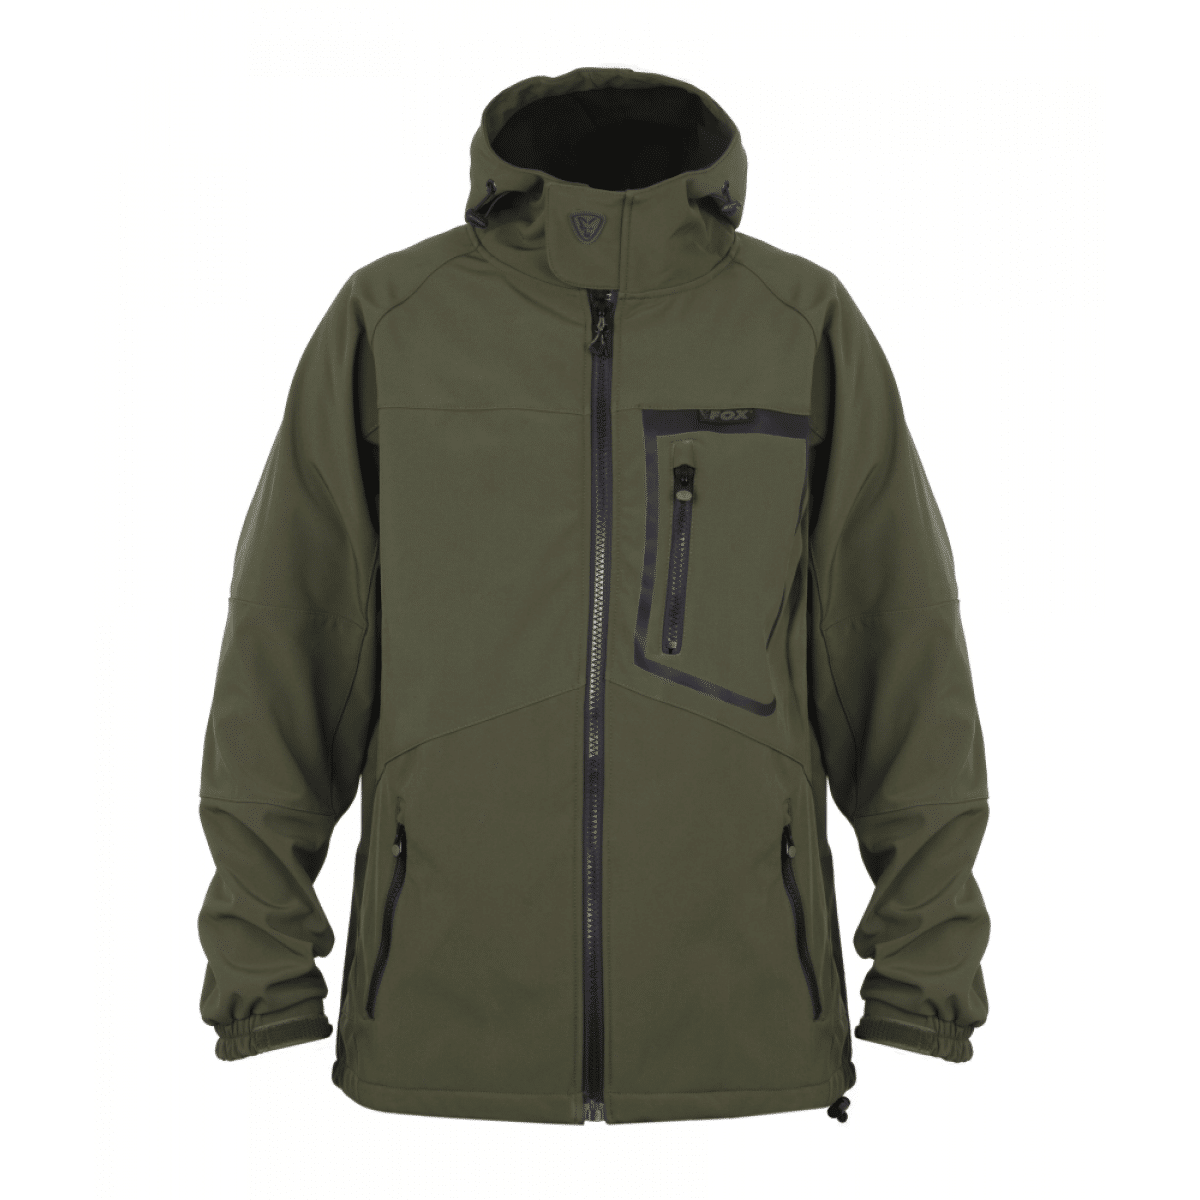 9003668 - Fox Green & Black Softshell Jacket